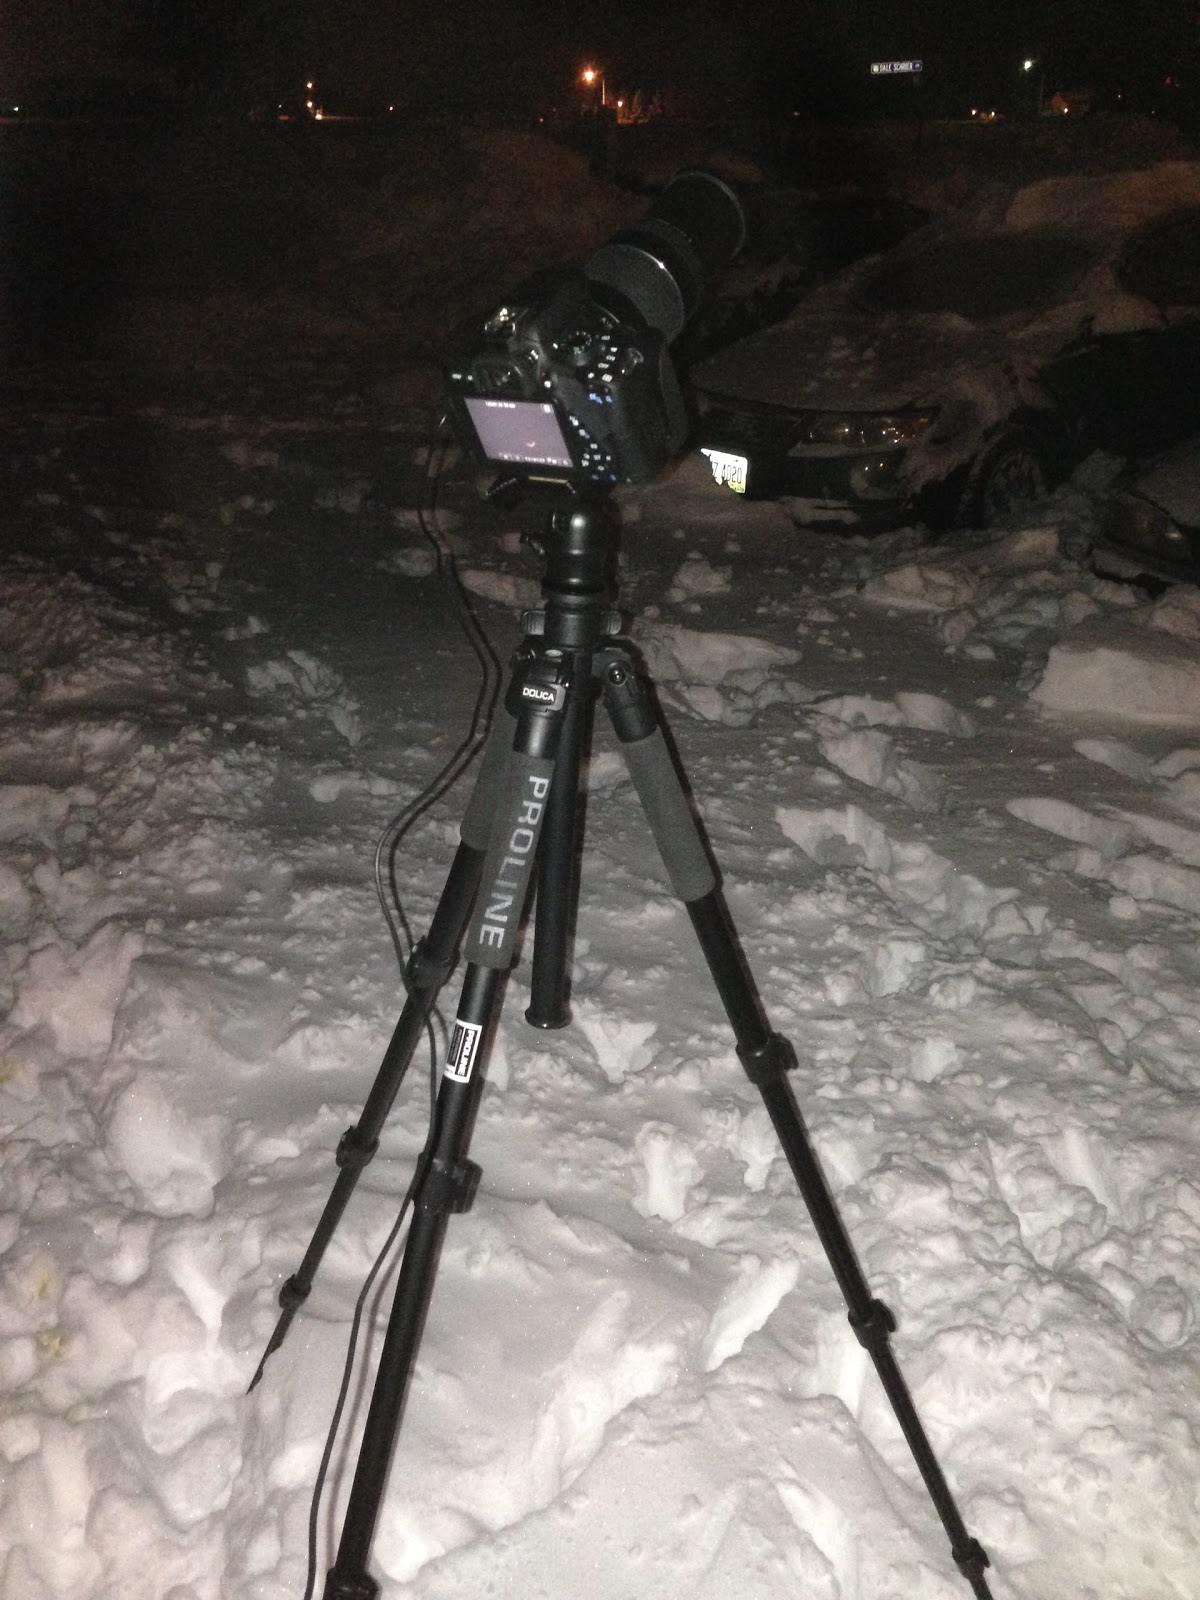 tripod in the snow